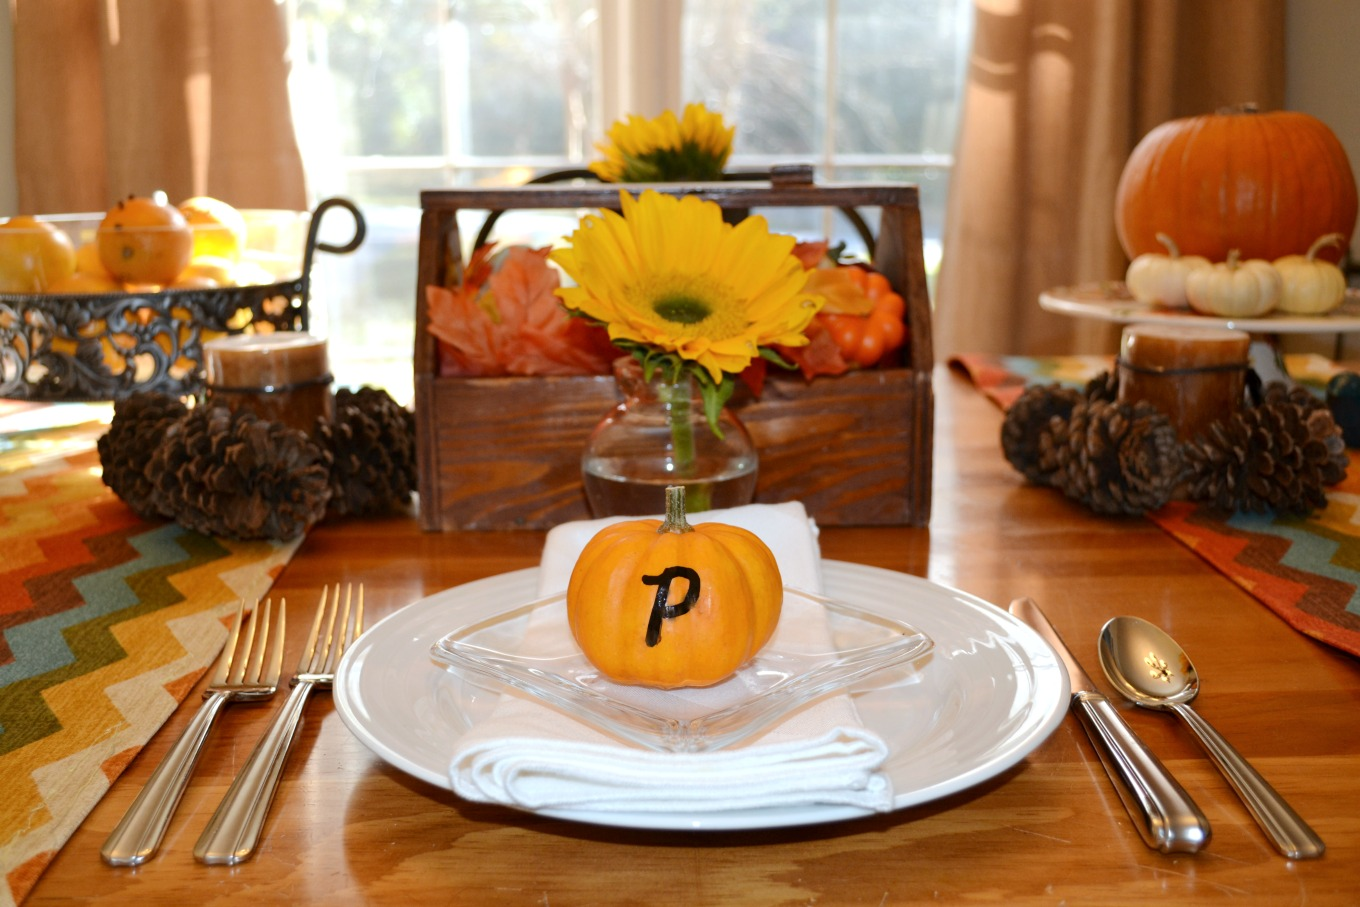 Turn pumpkins into place card holders to bring natural elements to Thanksgiving table - thediybungalow.com